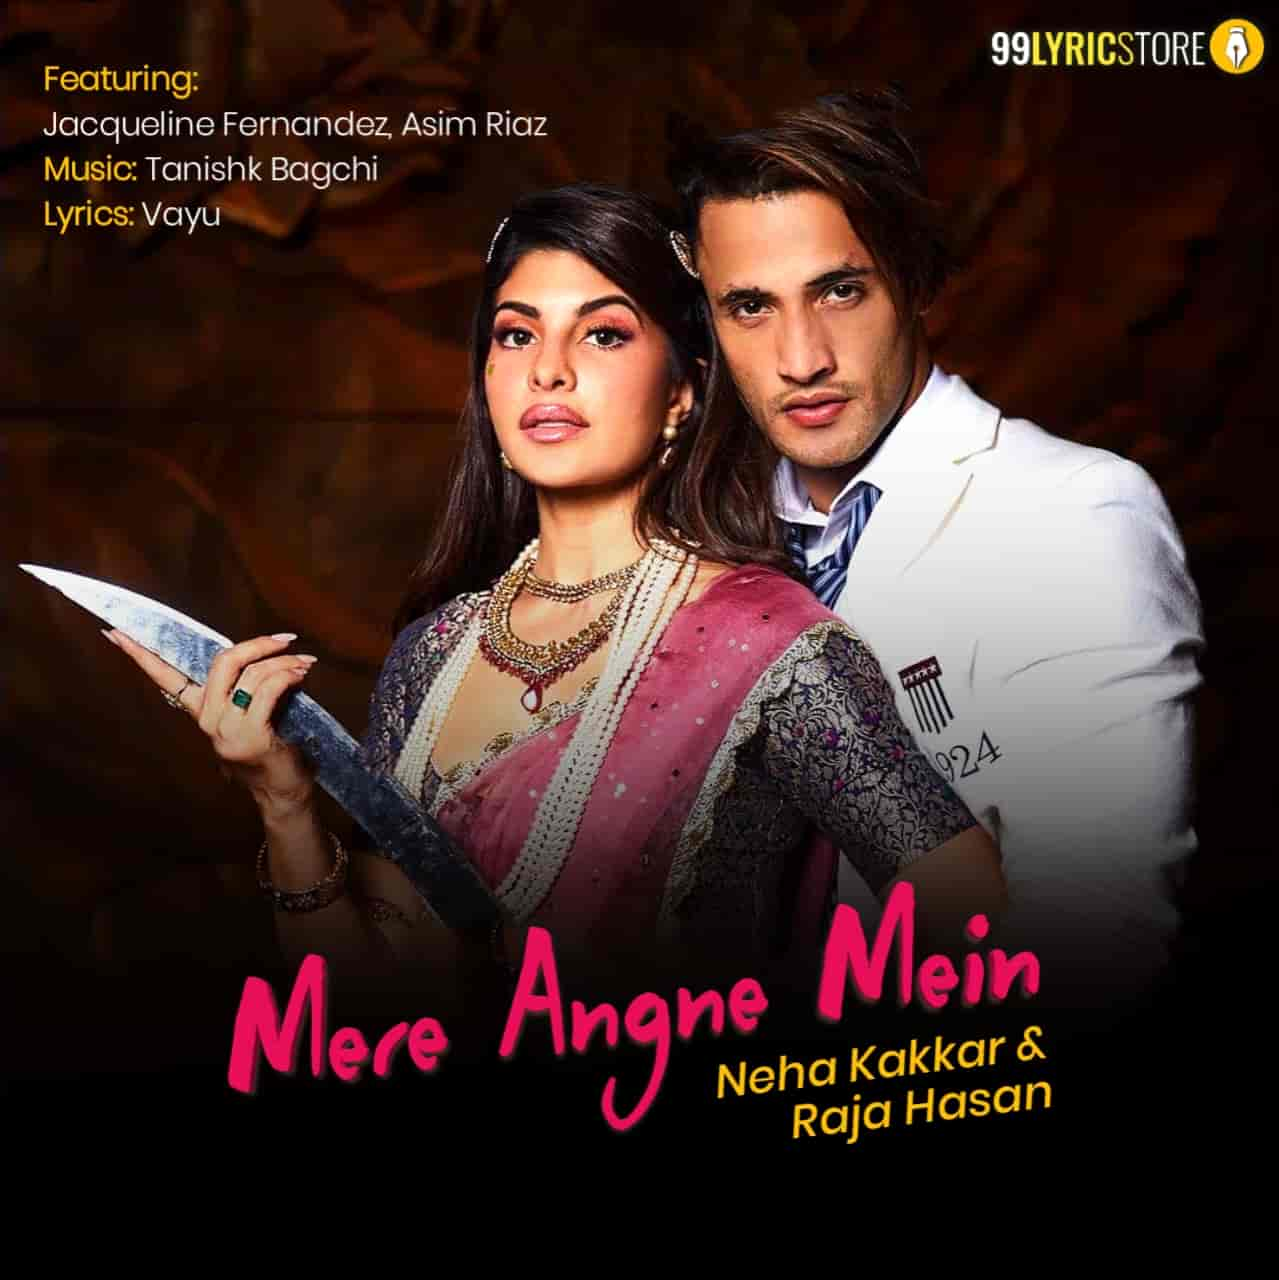 Mere Angne Mein Song Images By Neha Kakkar featuring Jacqueline Fernandez